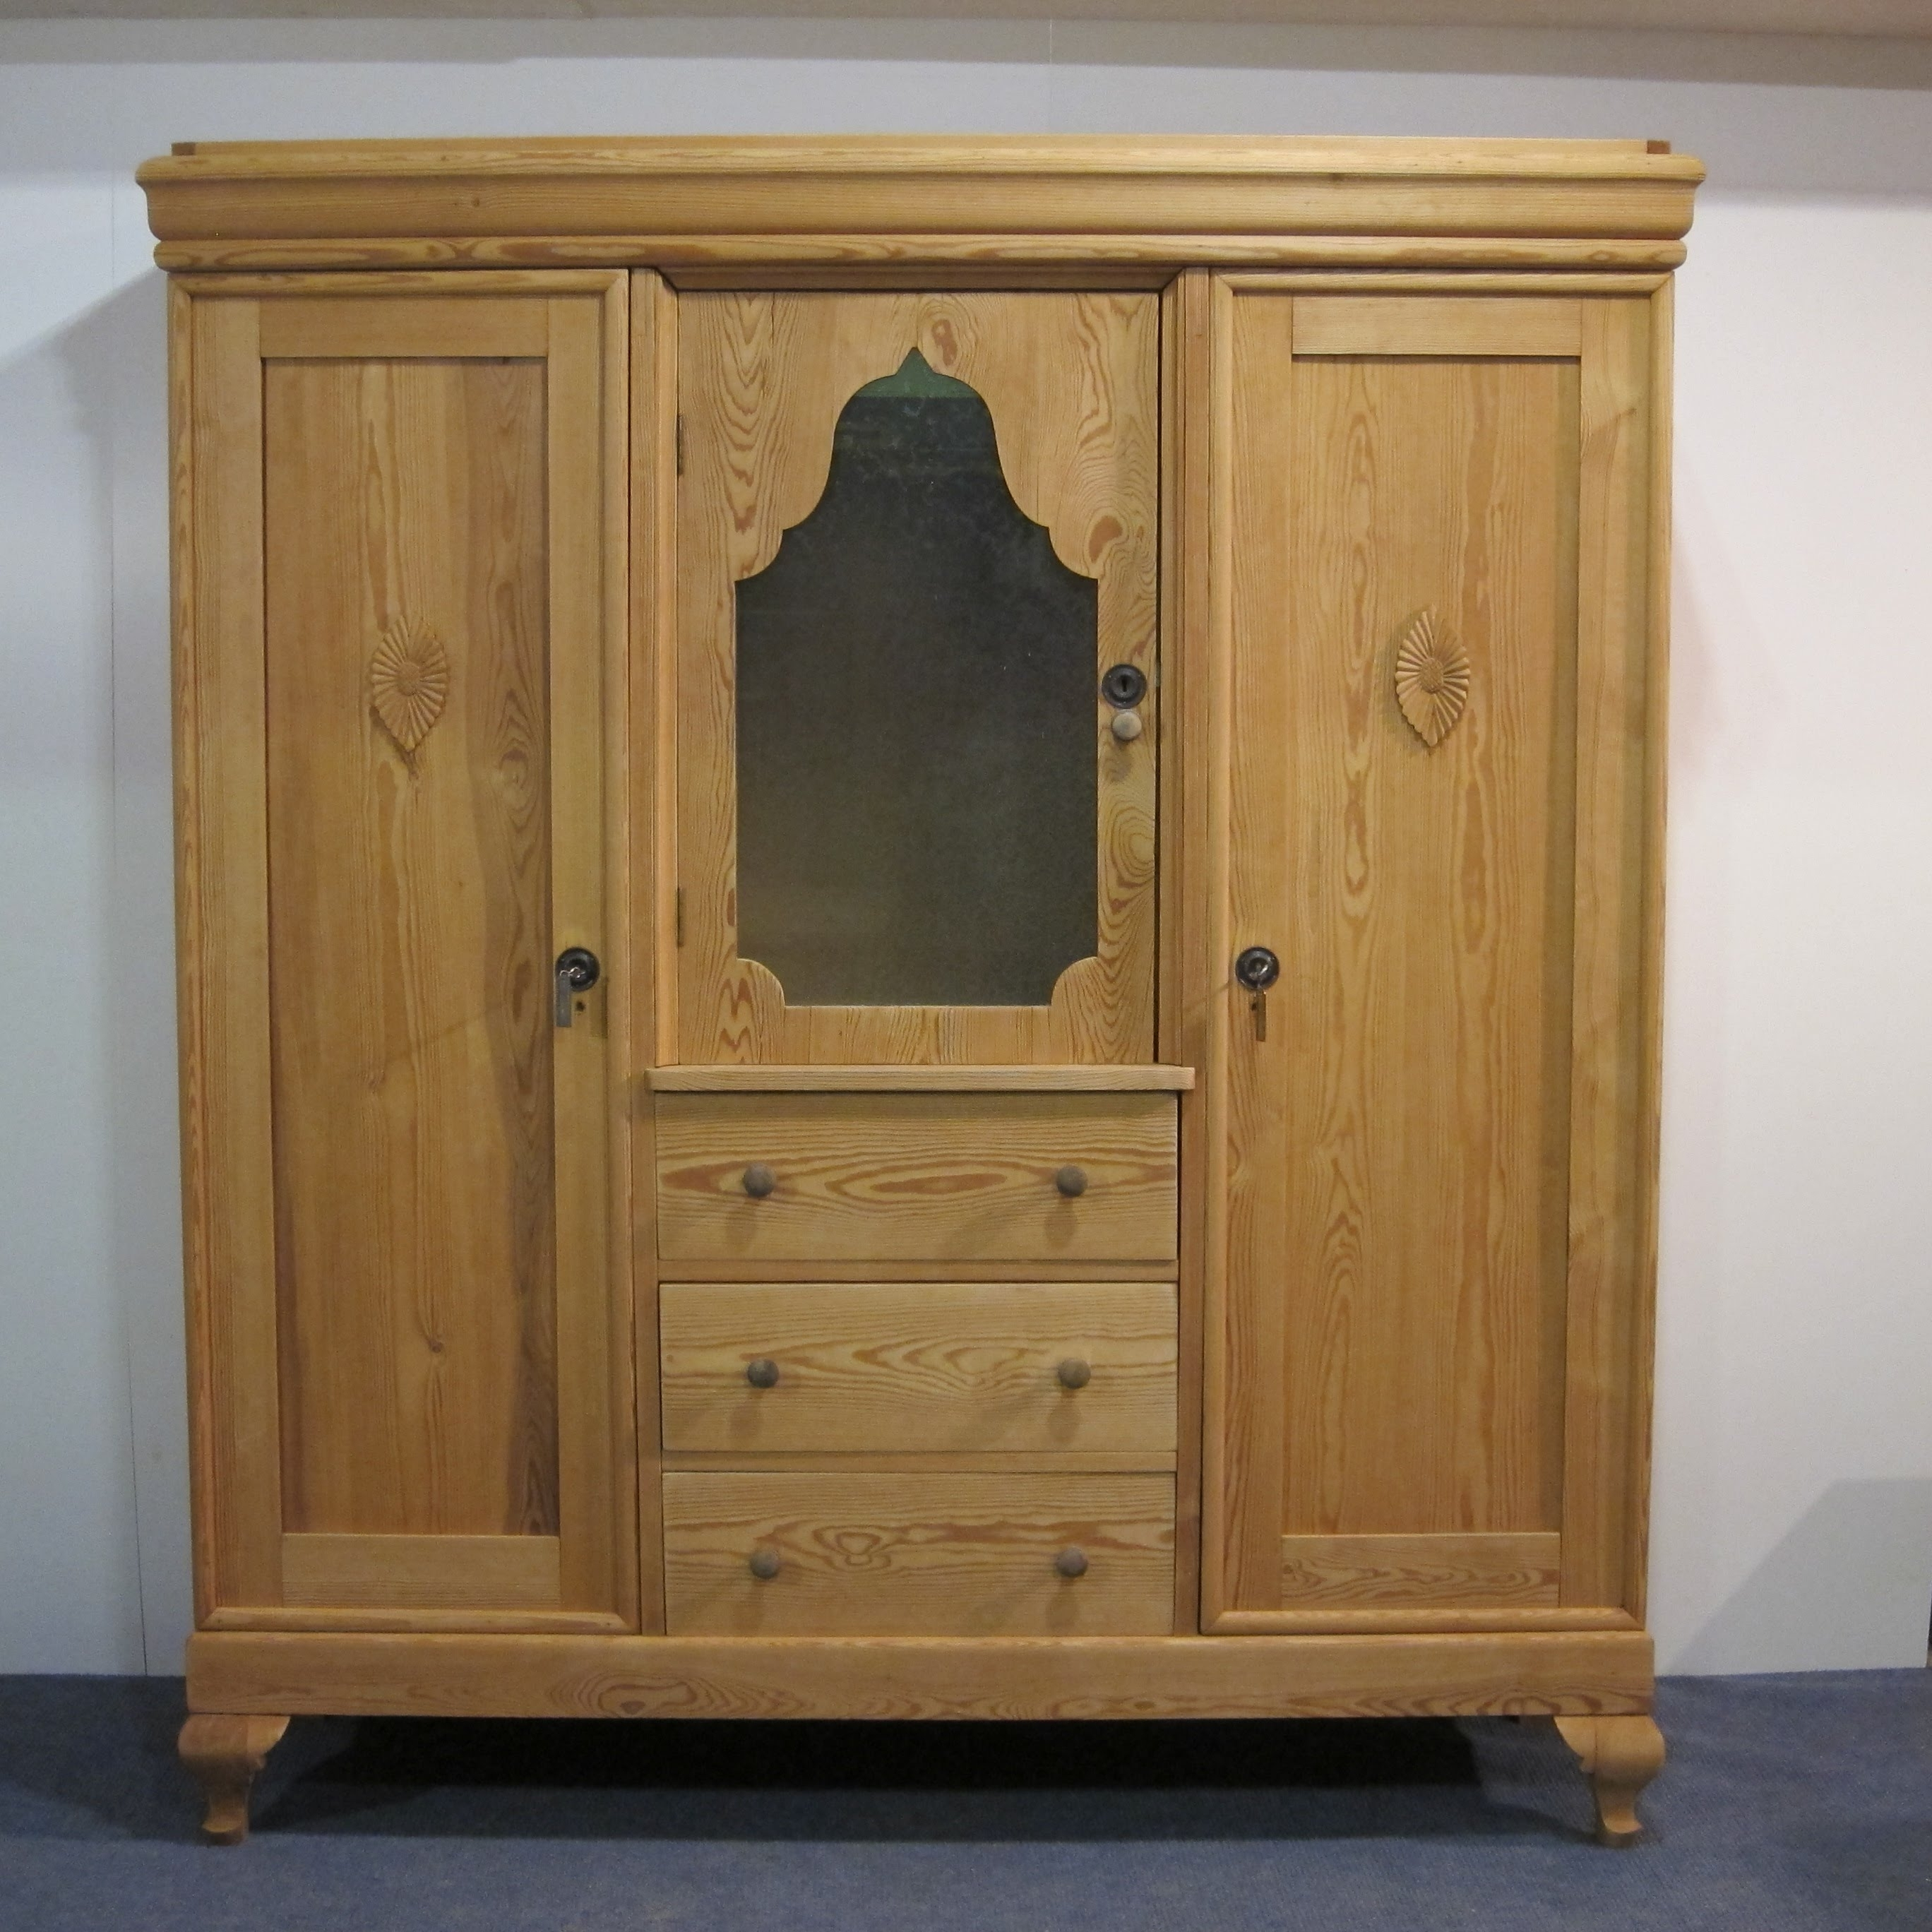 Trendy Pine Wardrobes With Drawers Intended For Large Antique Pine Wardrobe Unit With Drawers – Pinefinders Old (View 13 of 15)